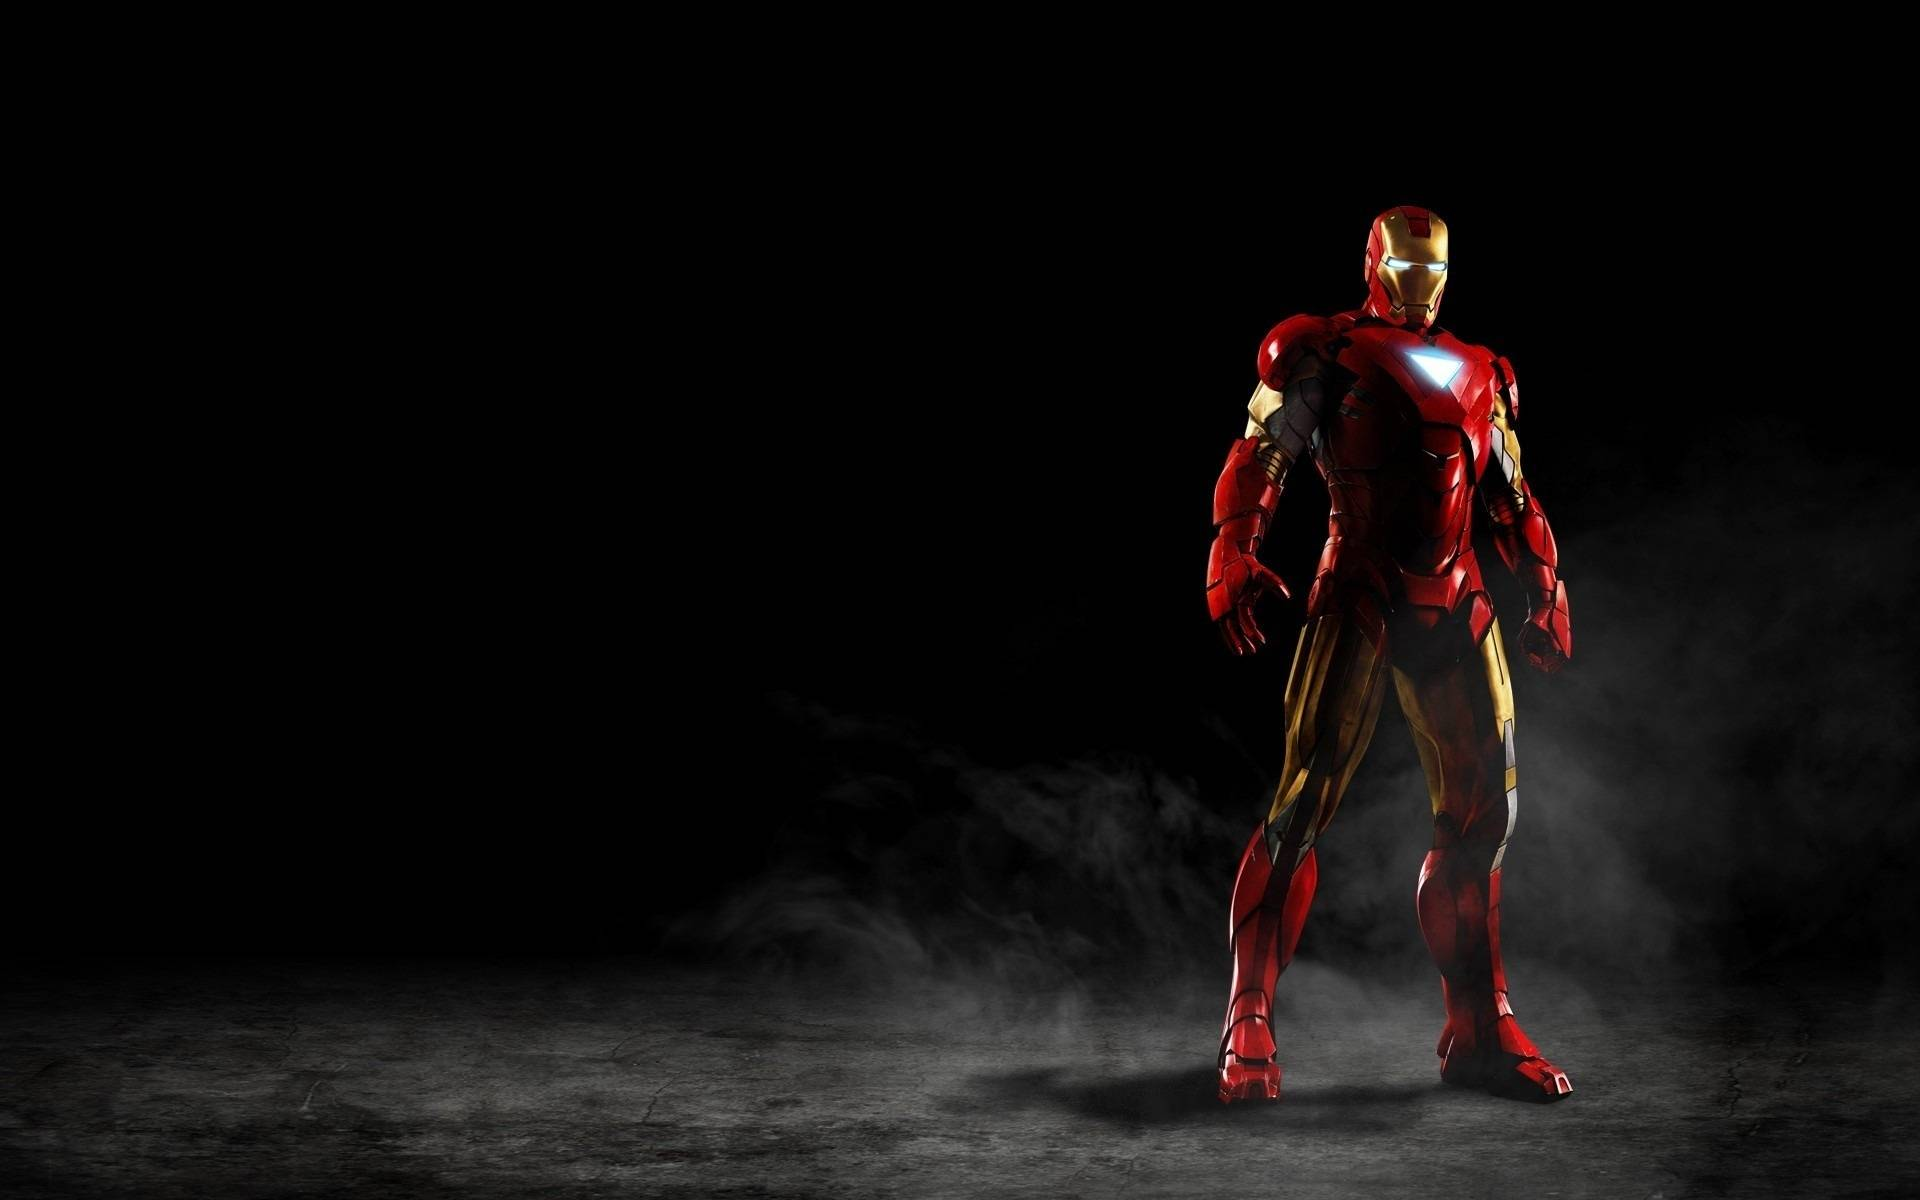 Iron Man Avengers Wallpaper High Quality Resolution With